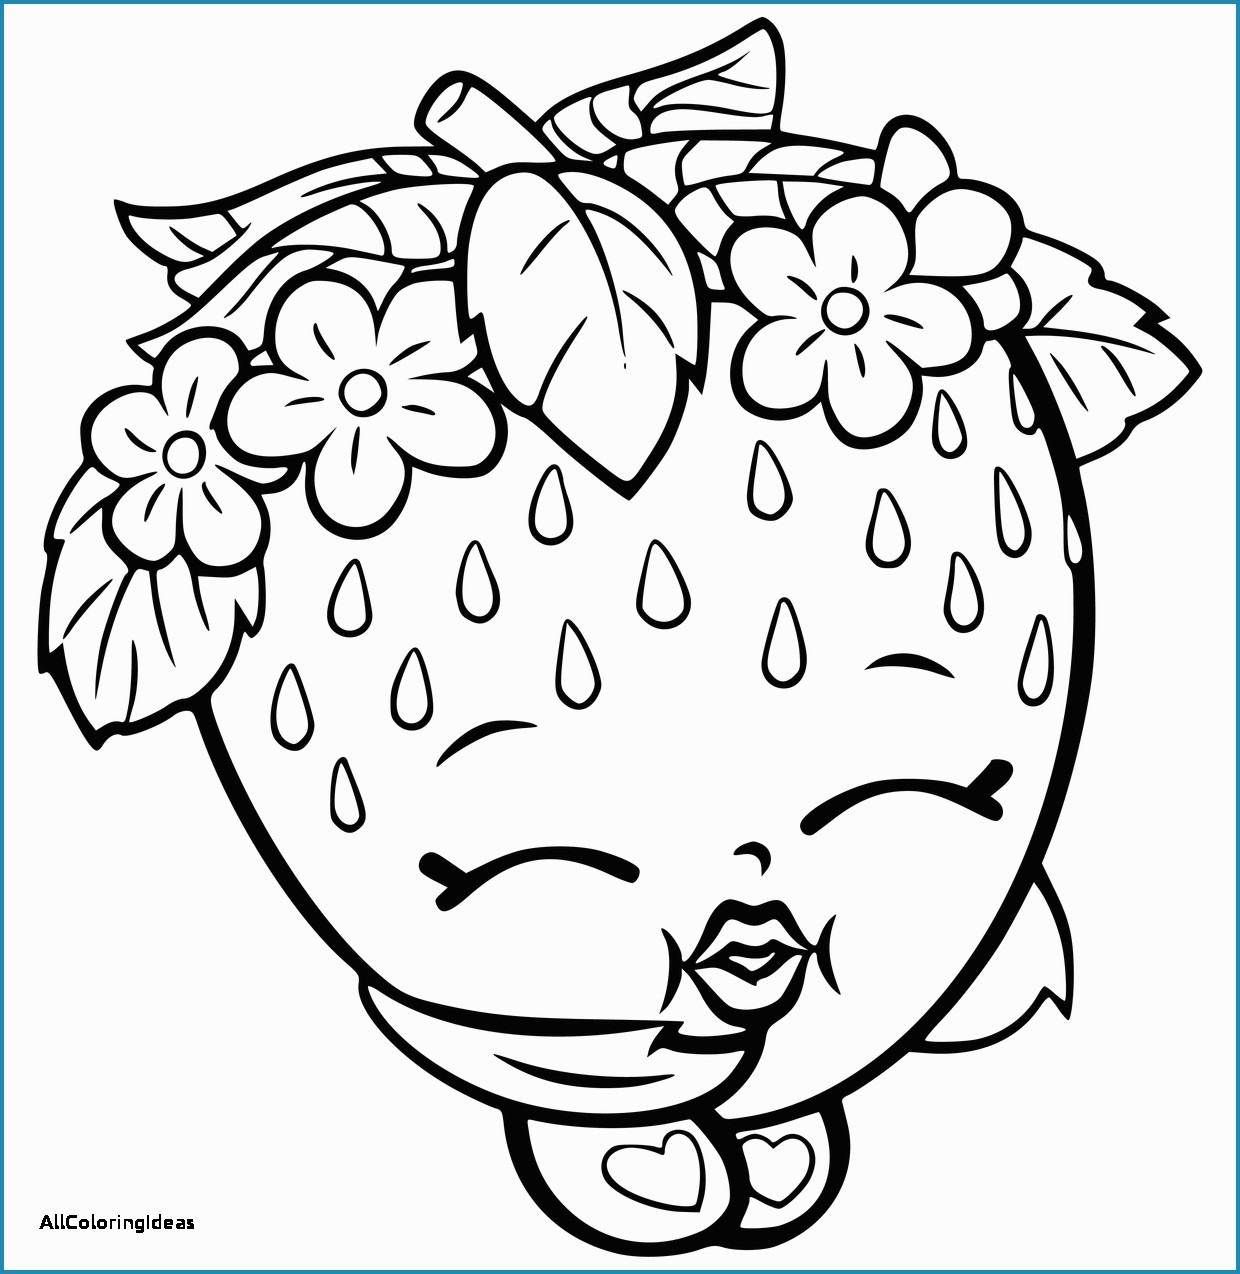 1240x1274 Shopkins Characters Wobbles Coloring Pages Cute Free